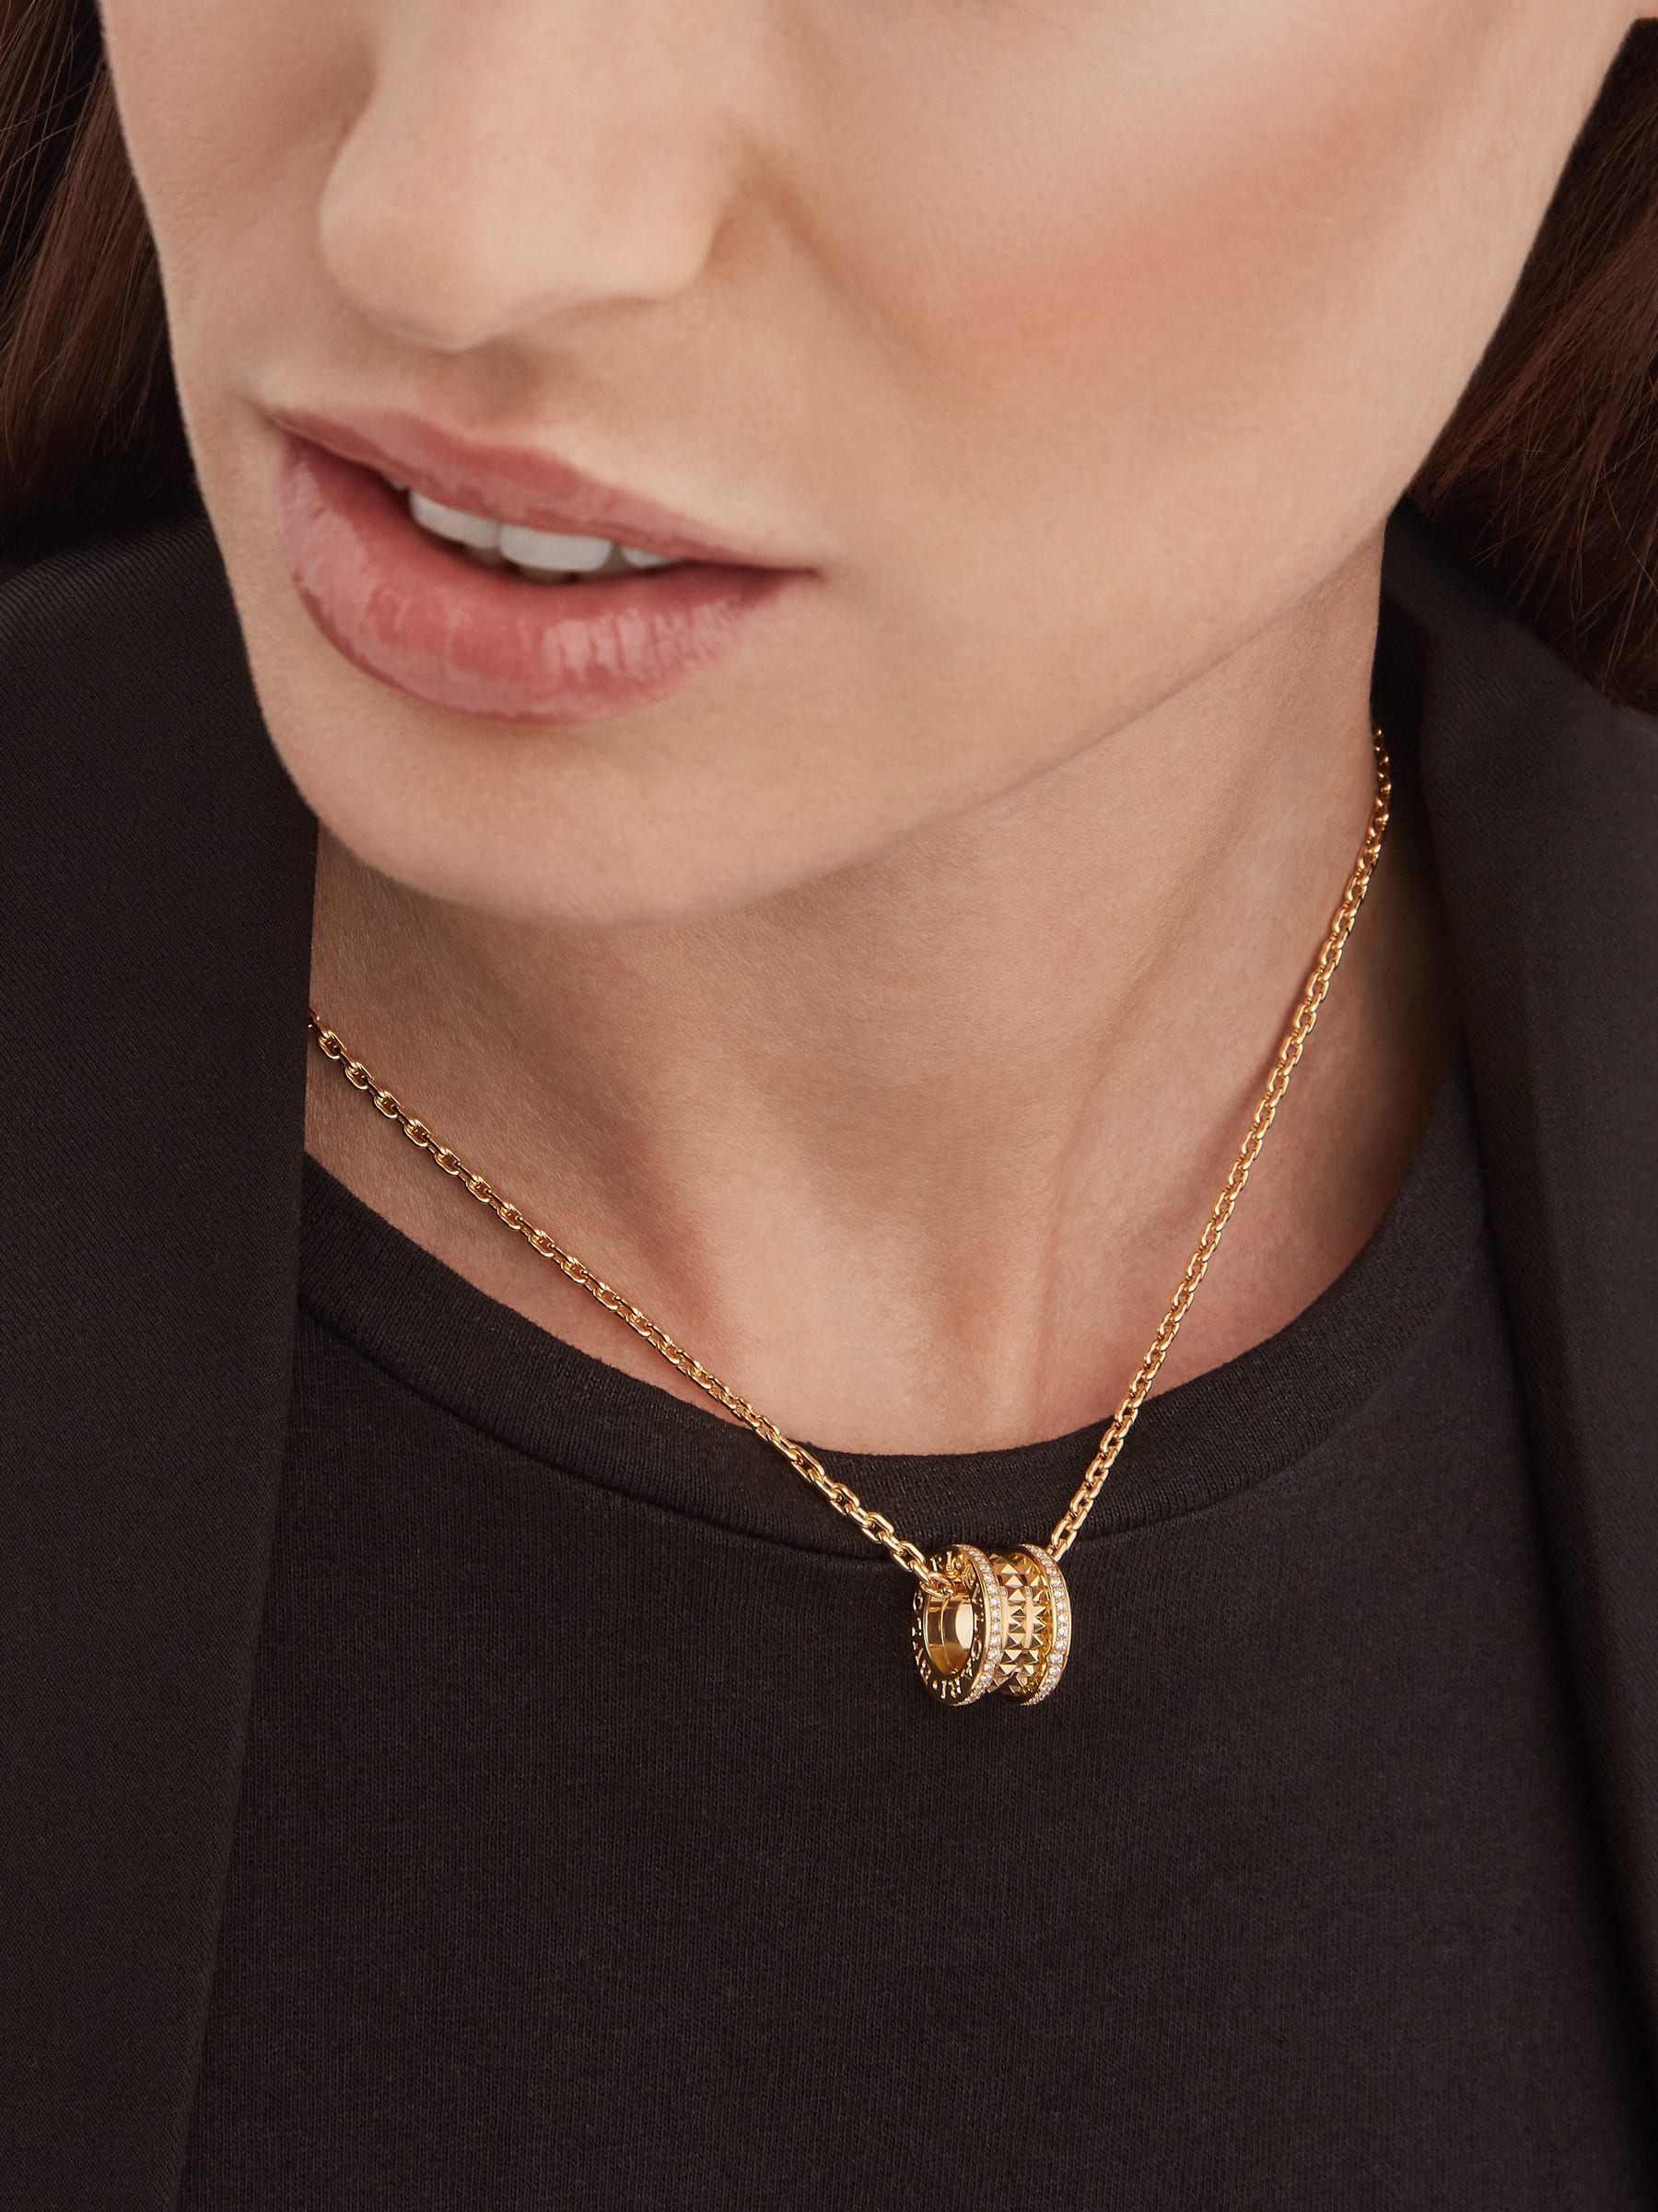 B.zero1 Rock pendant necklace in 18 kt yellow gold with studs set with pavé diamonds 358349 image 4